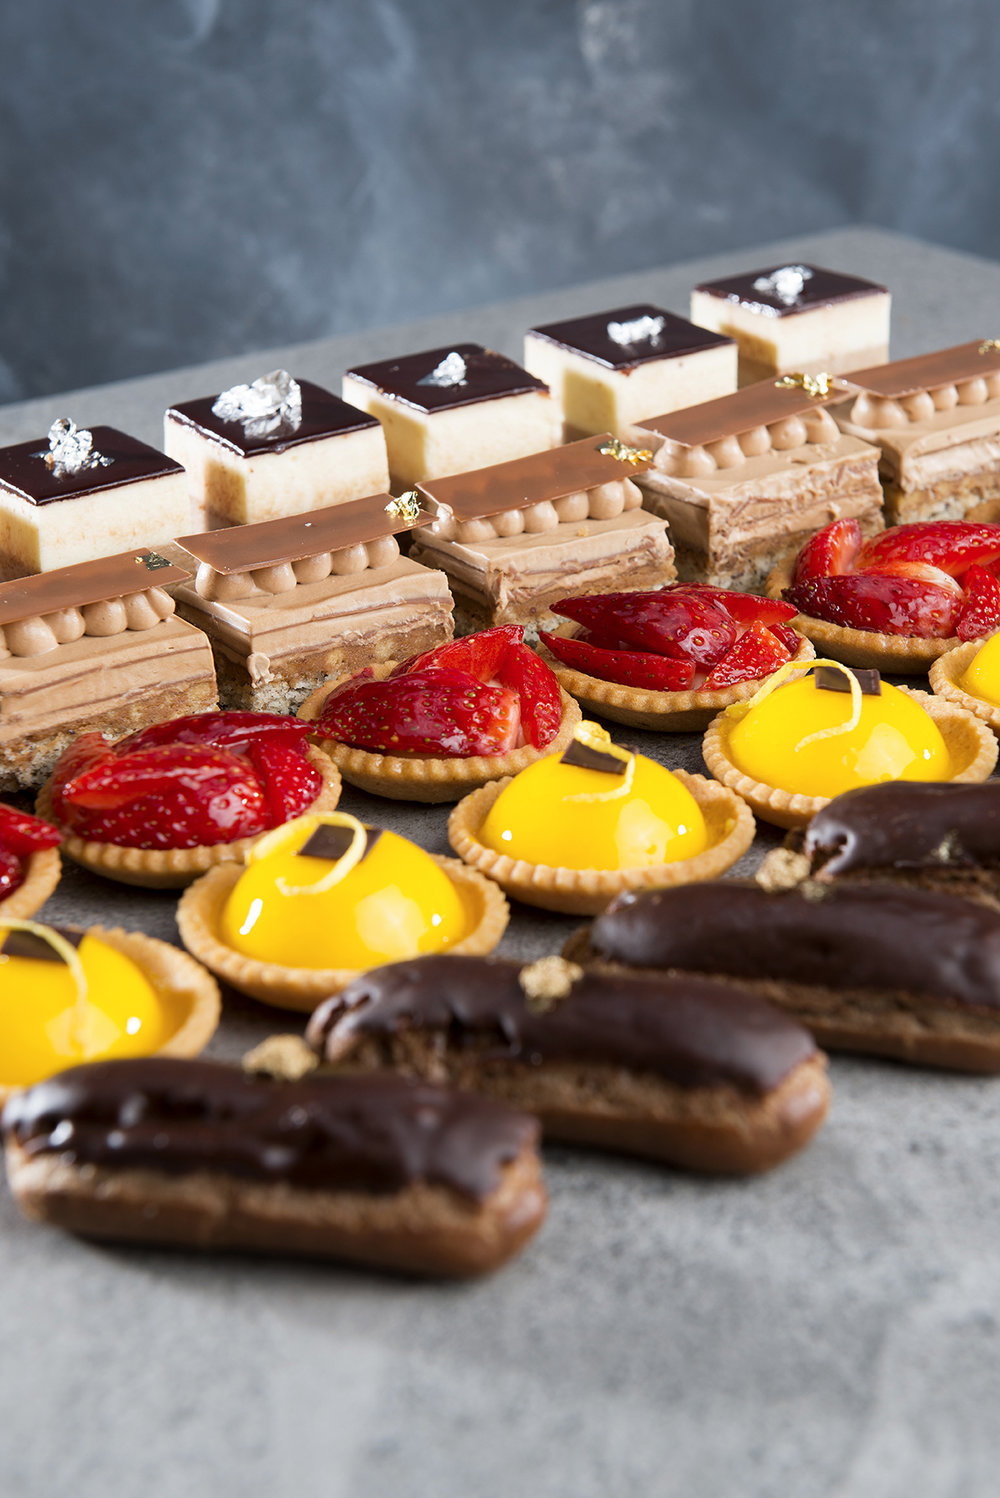 9. Selection of Petit Fours